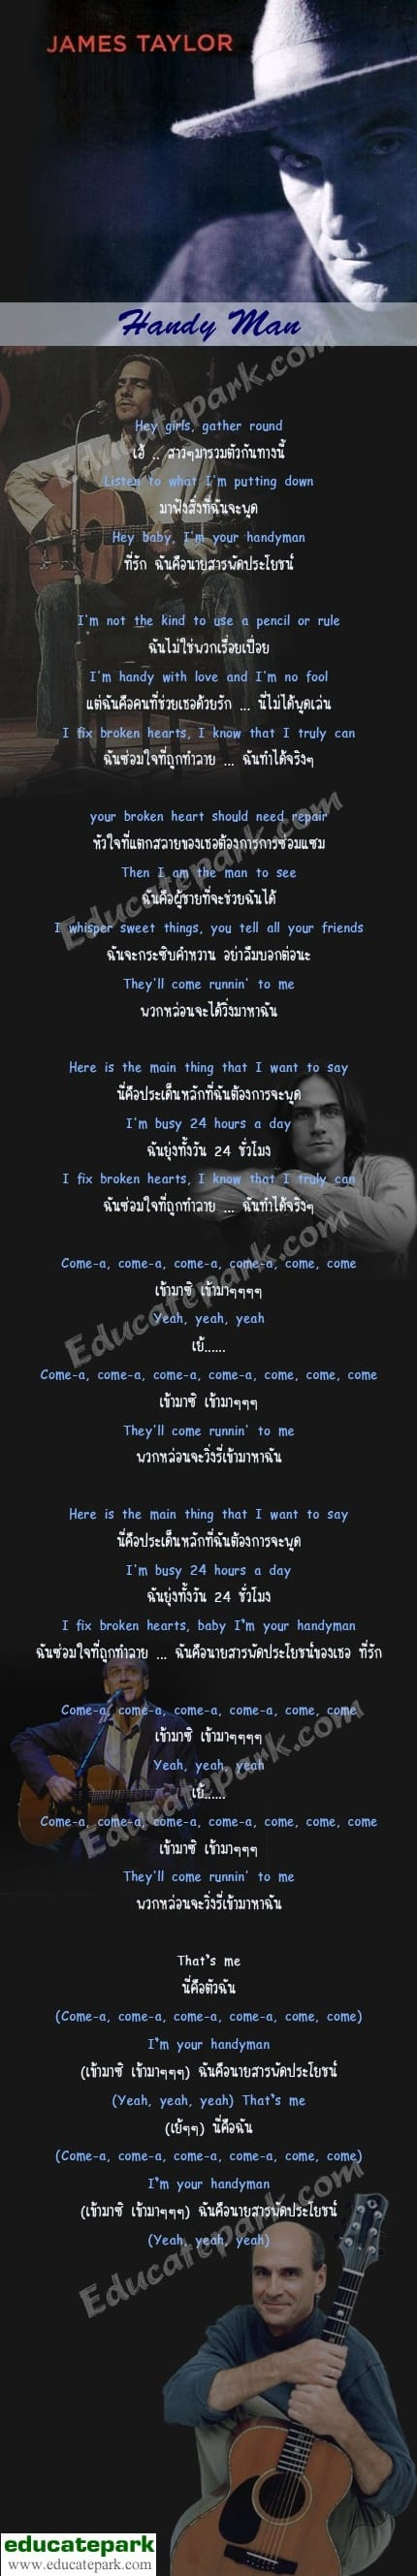 แปลเพลง Handy Man - James Taylor